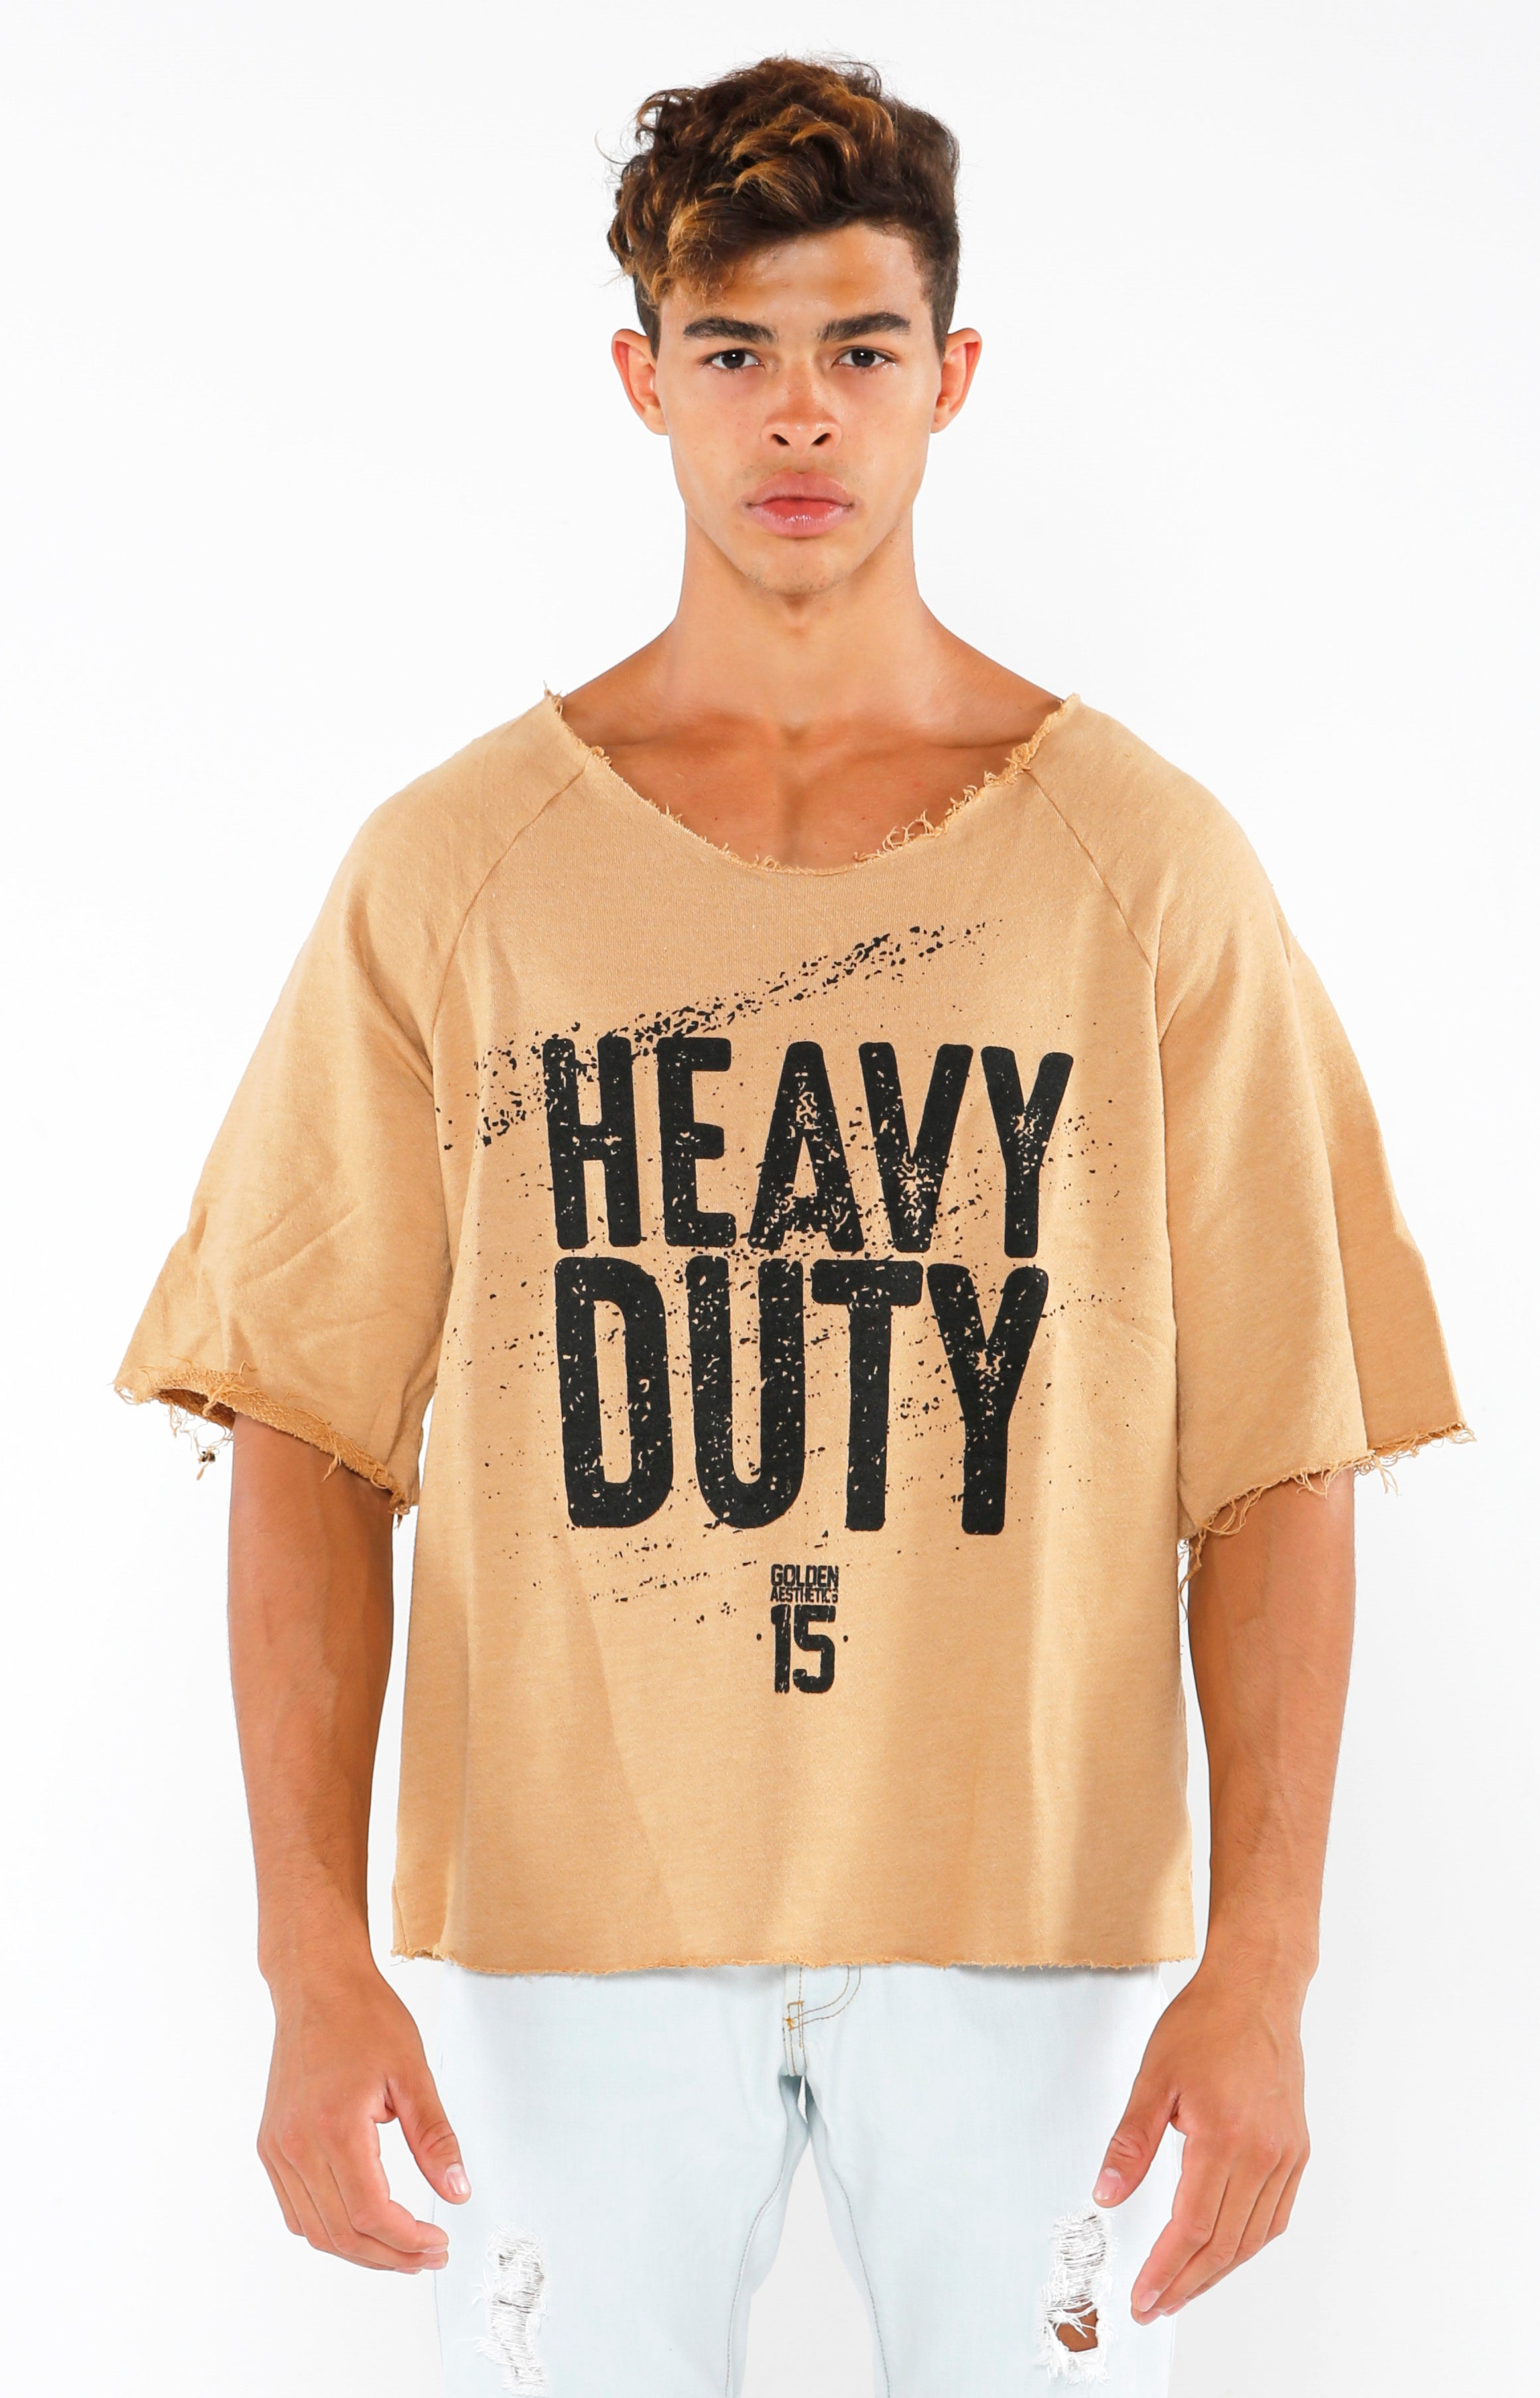 Heavy Duty Raw Cut Top - Taupe - Golden Aesthetics